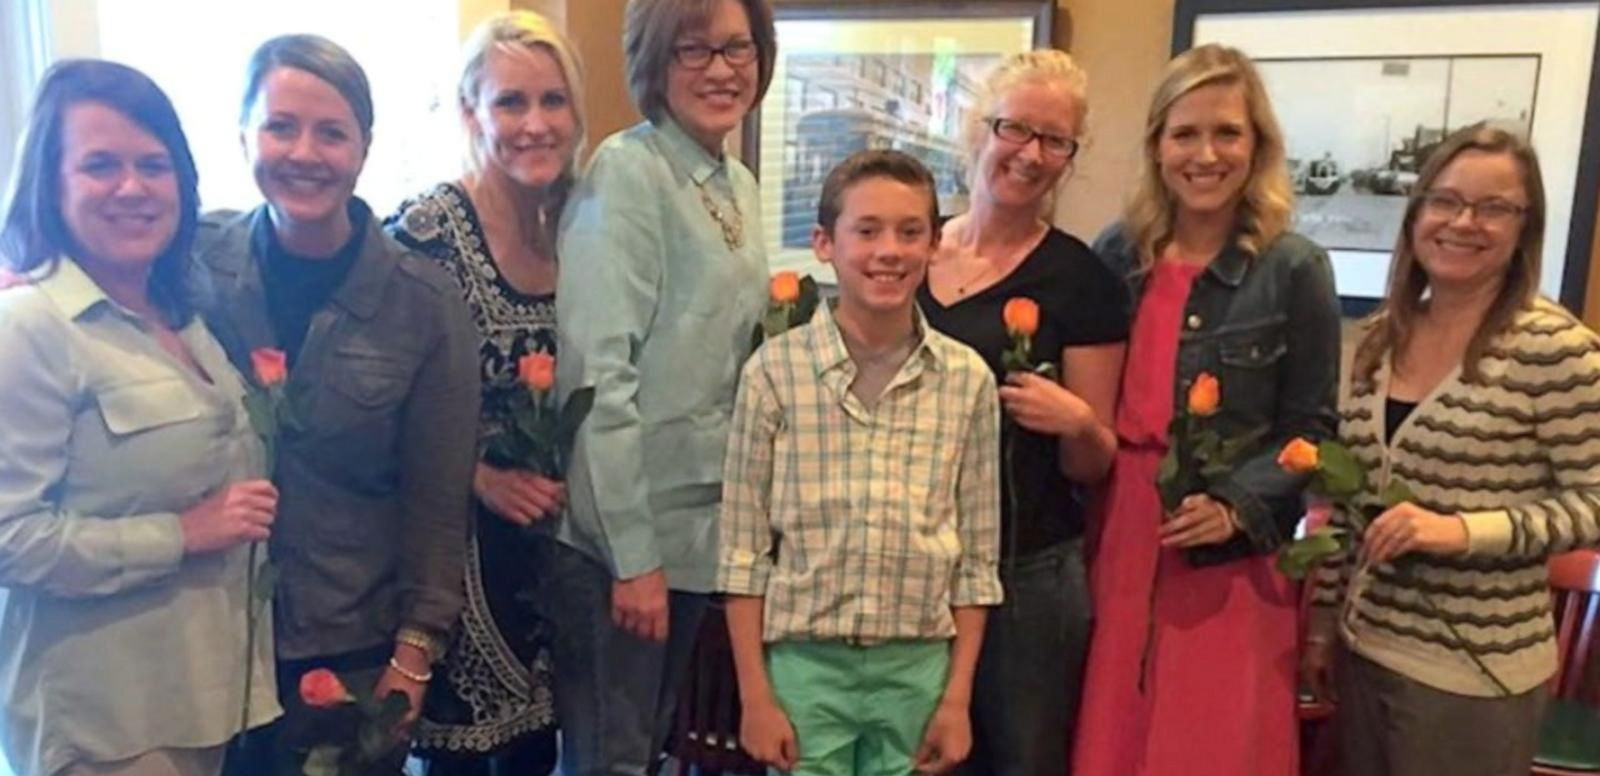 Cody Dortch hosted a dinner party for almost every teacher he's had since kindergarten.